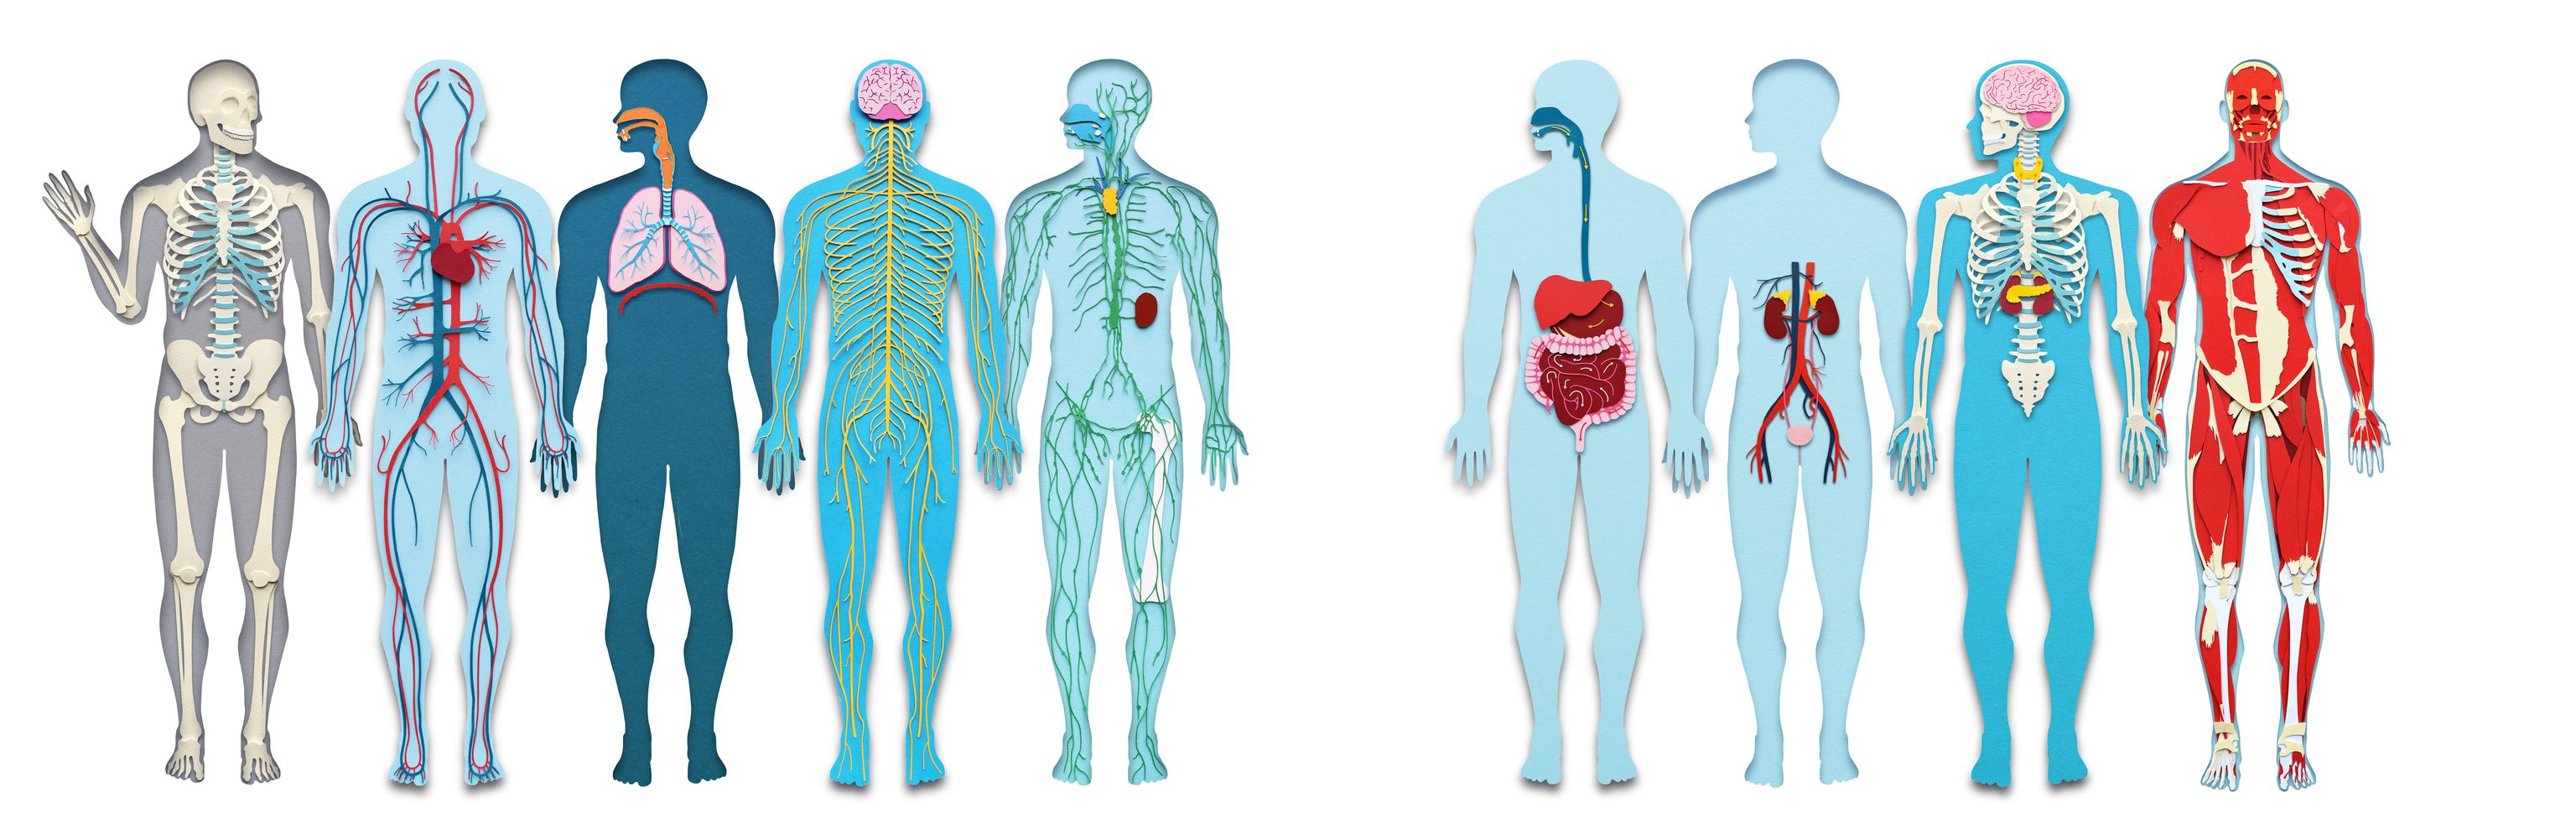 what are the five body functions that monitor homeostasis